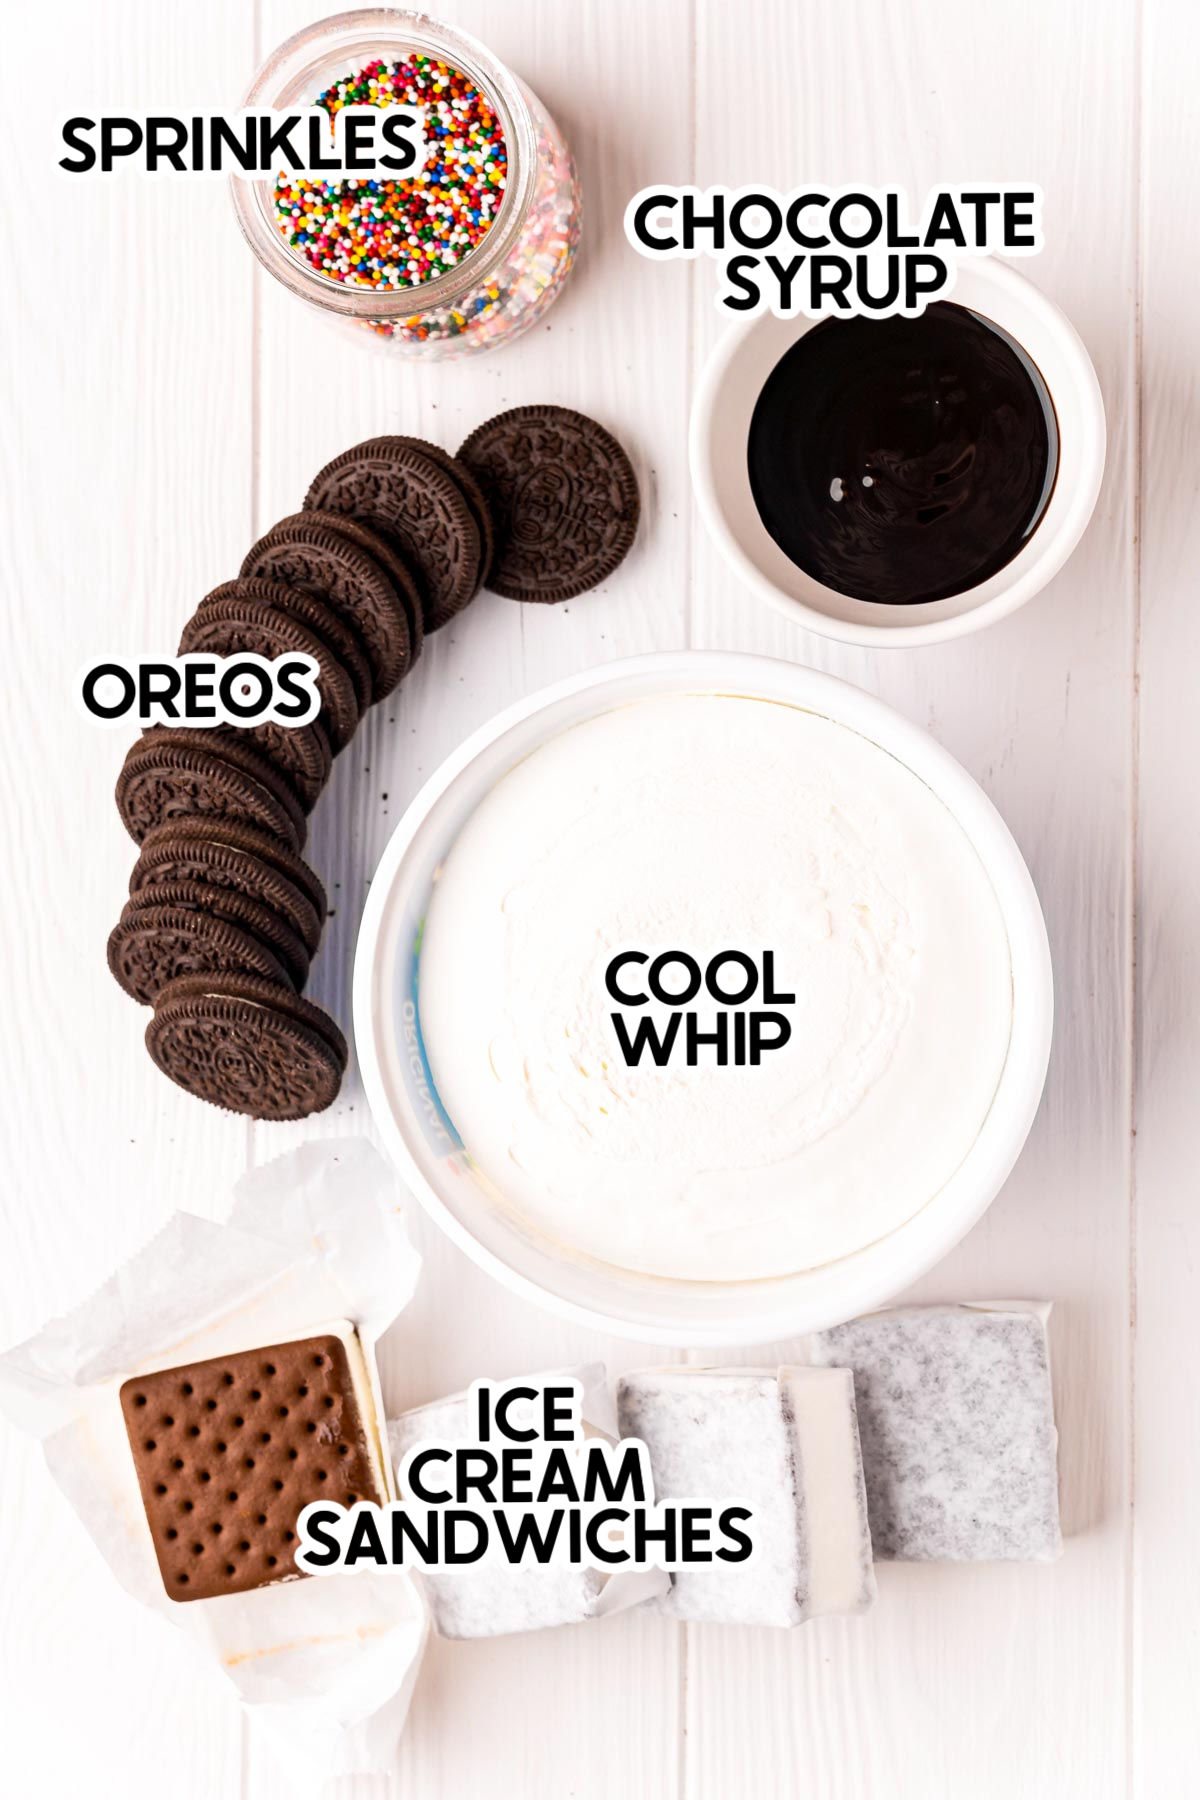 ingredients to make Oreo ice cream cake with labels